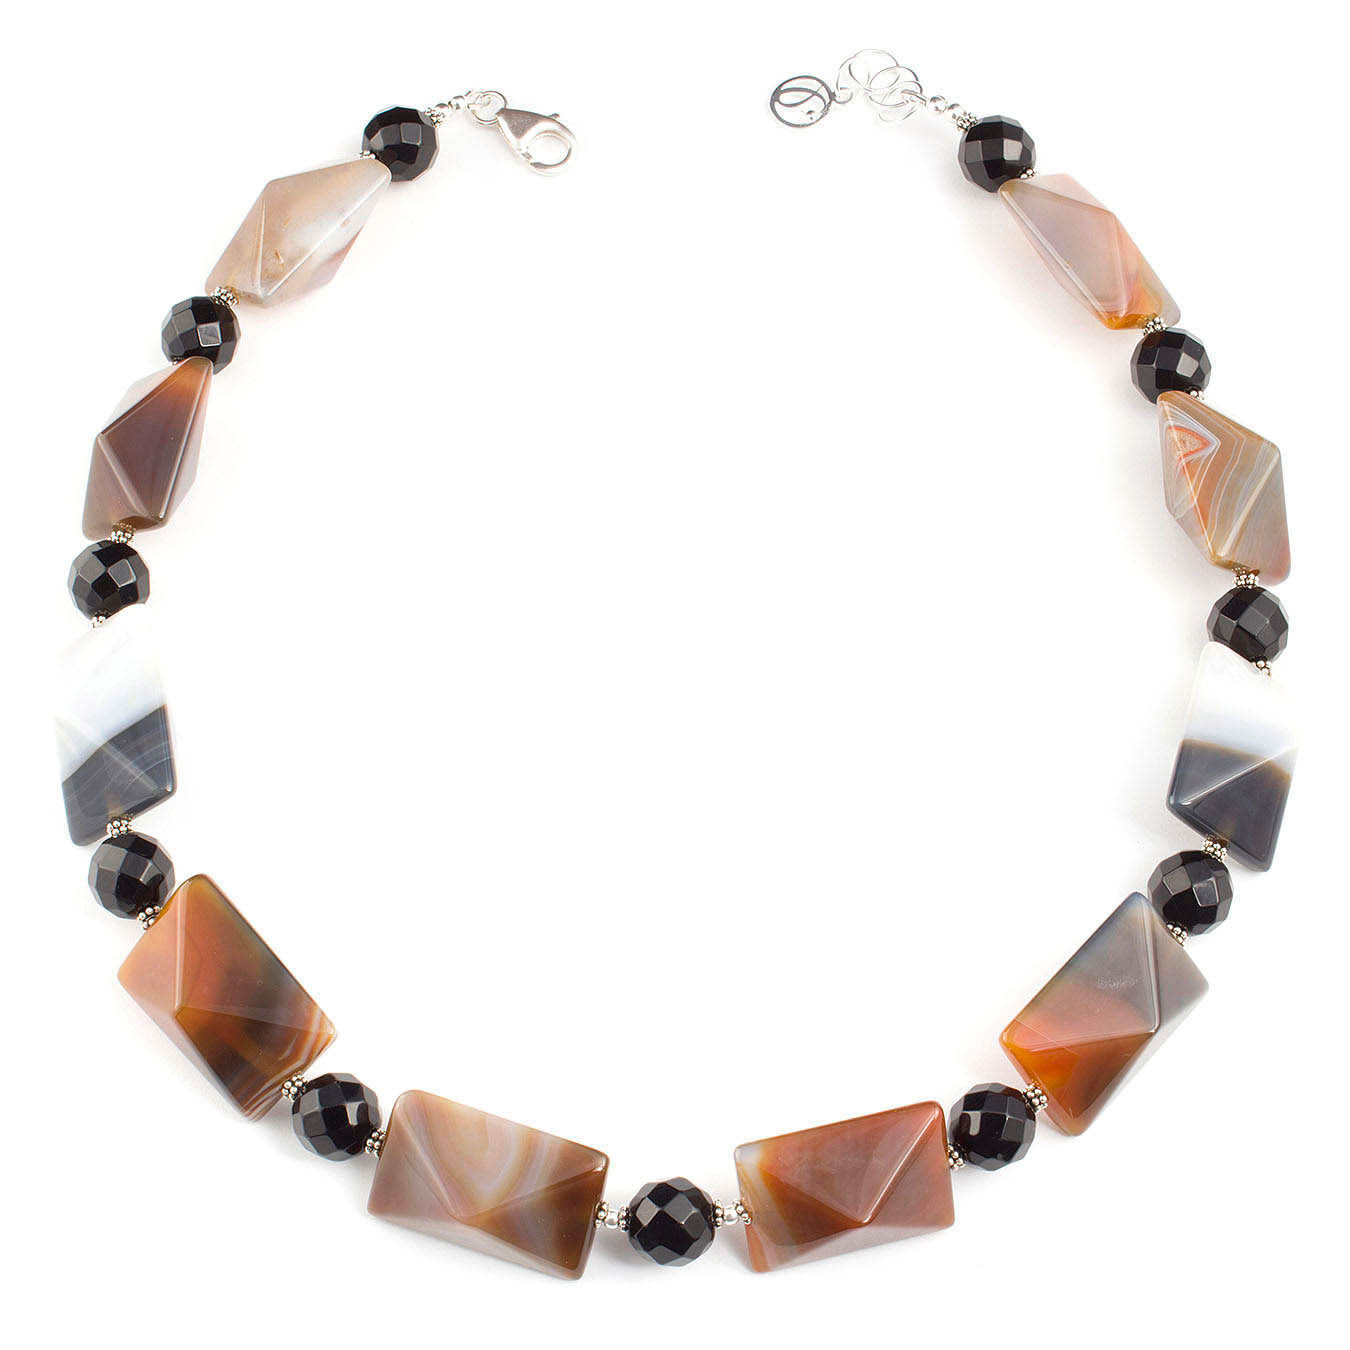 Semi-precious beaded jewelry necklace made of Botswana and black agate